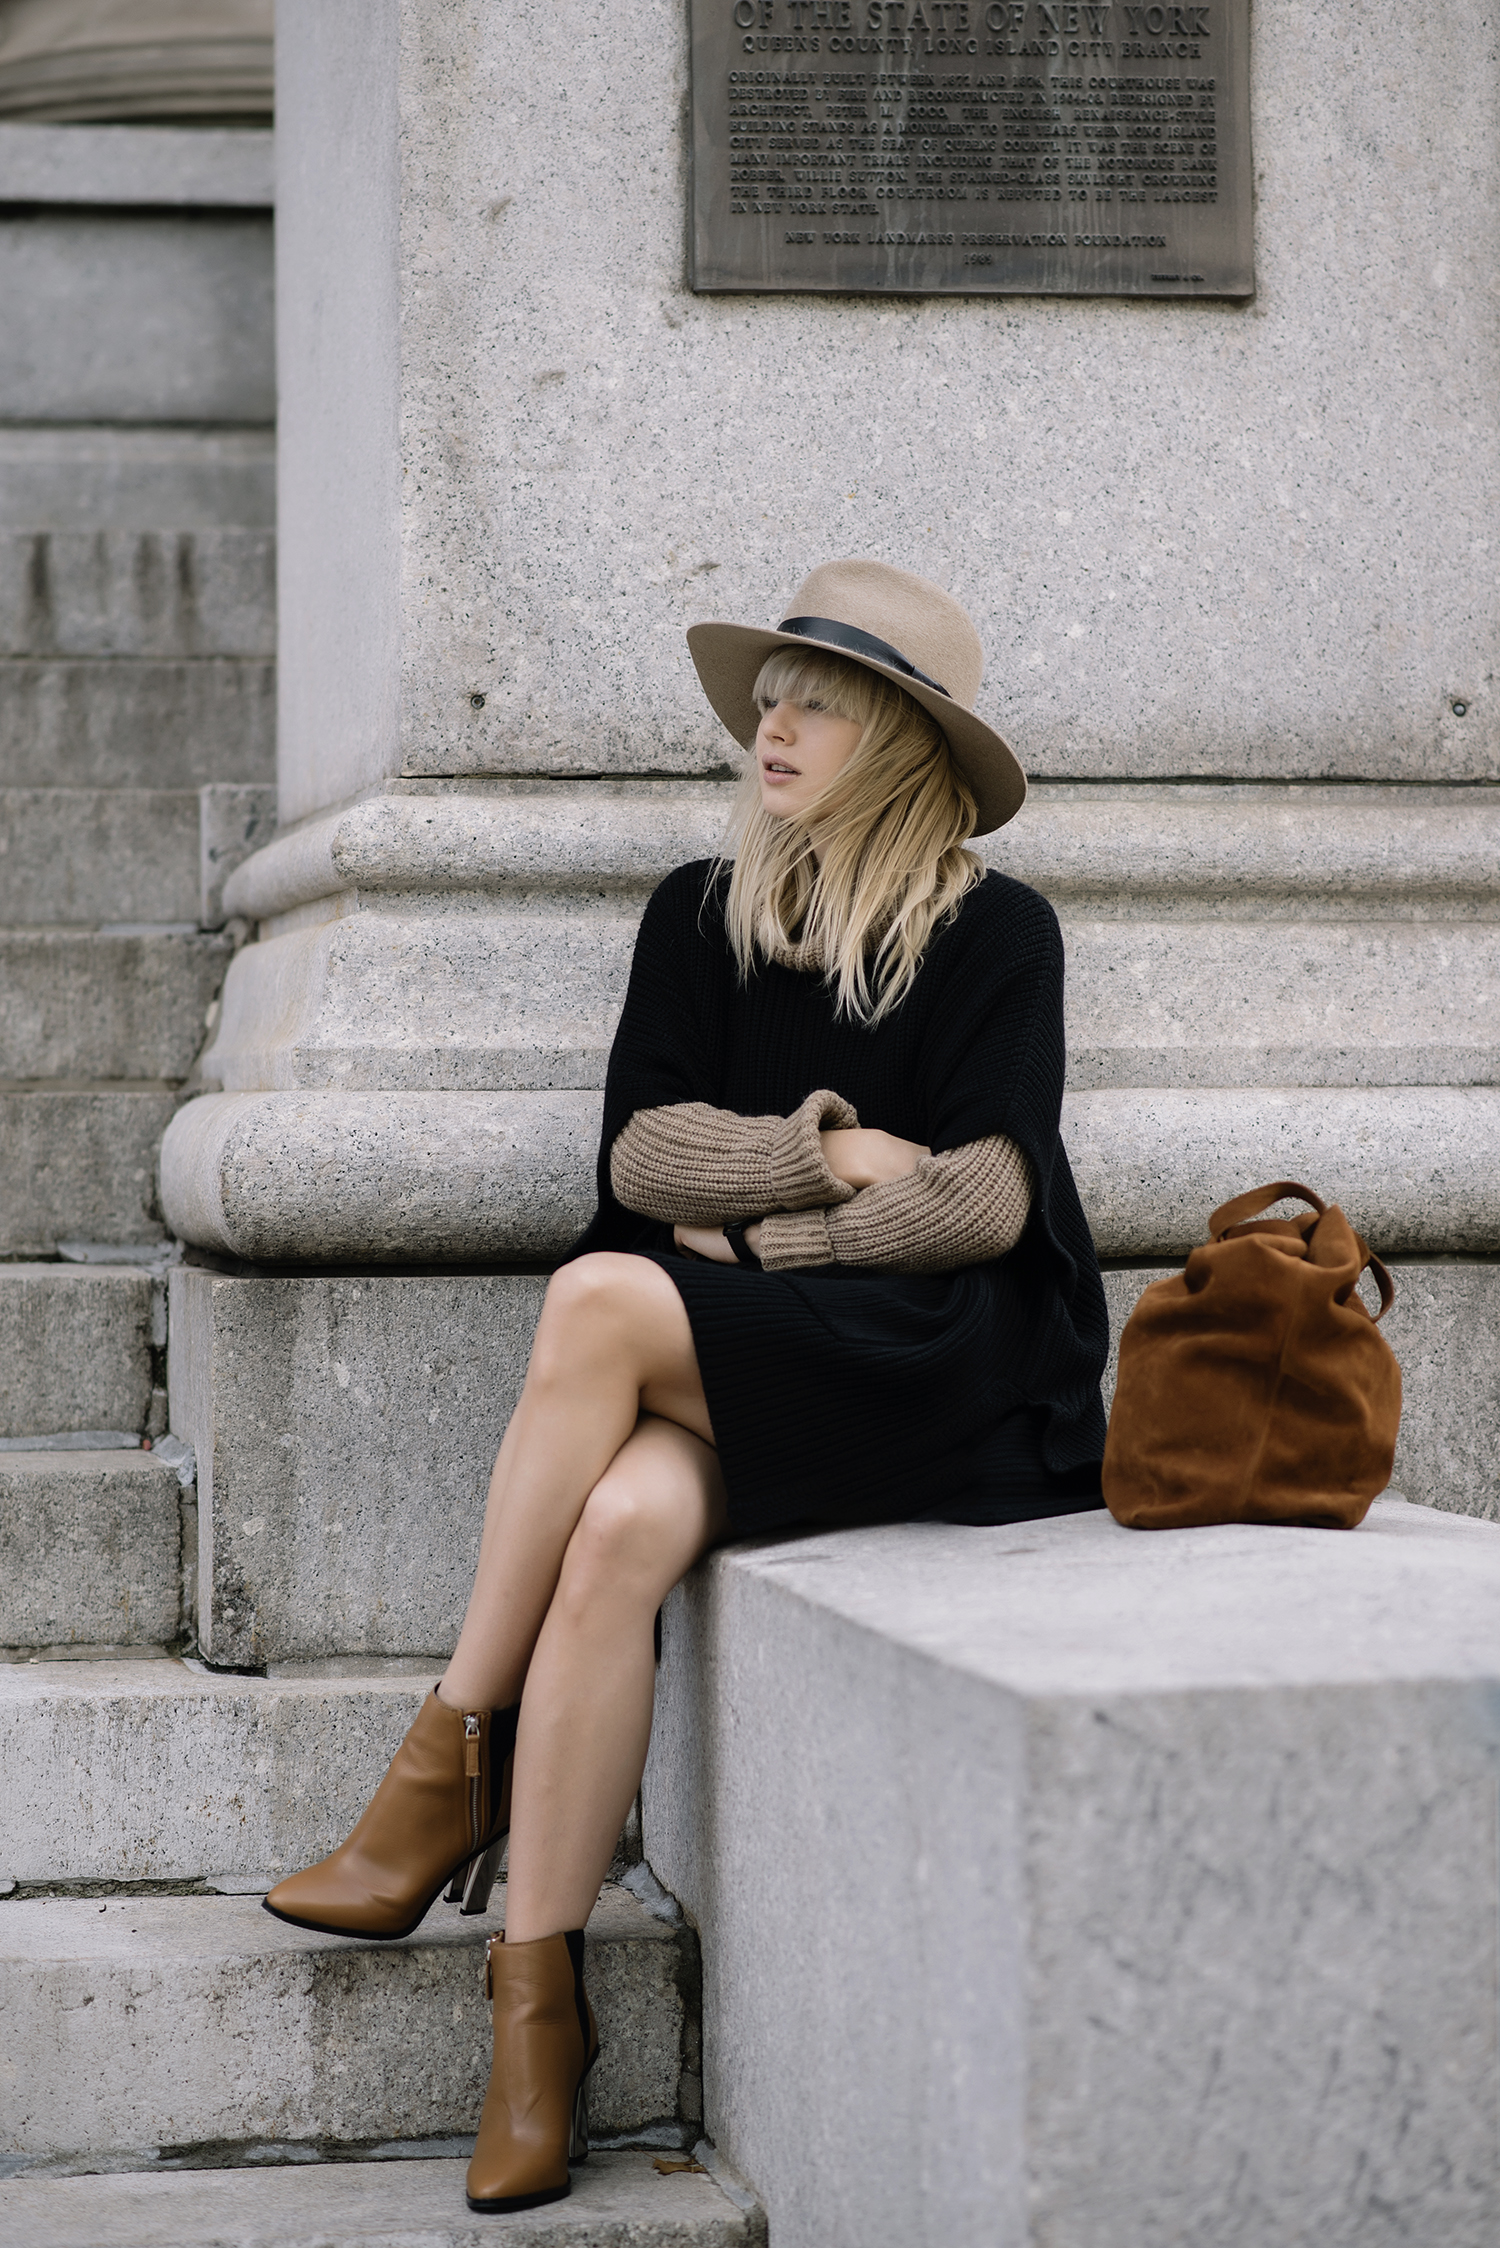 Lisa Dengler wears an oversized black poncho over a beige knit, paired with a matching hat. Boots: Aldo, Poncho: Aritzia, Turtleneck: Tommy Hilfiger.